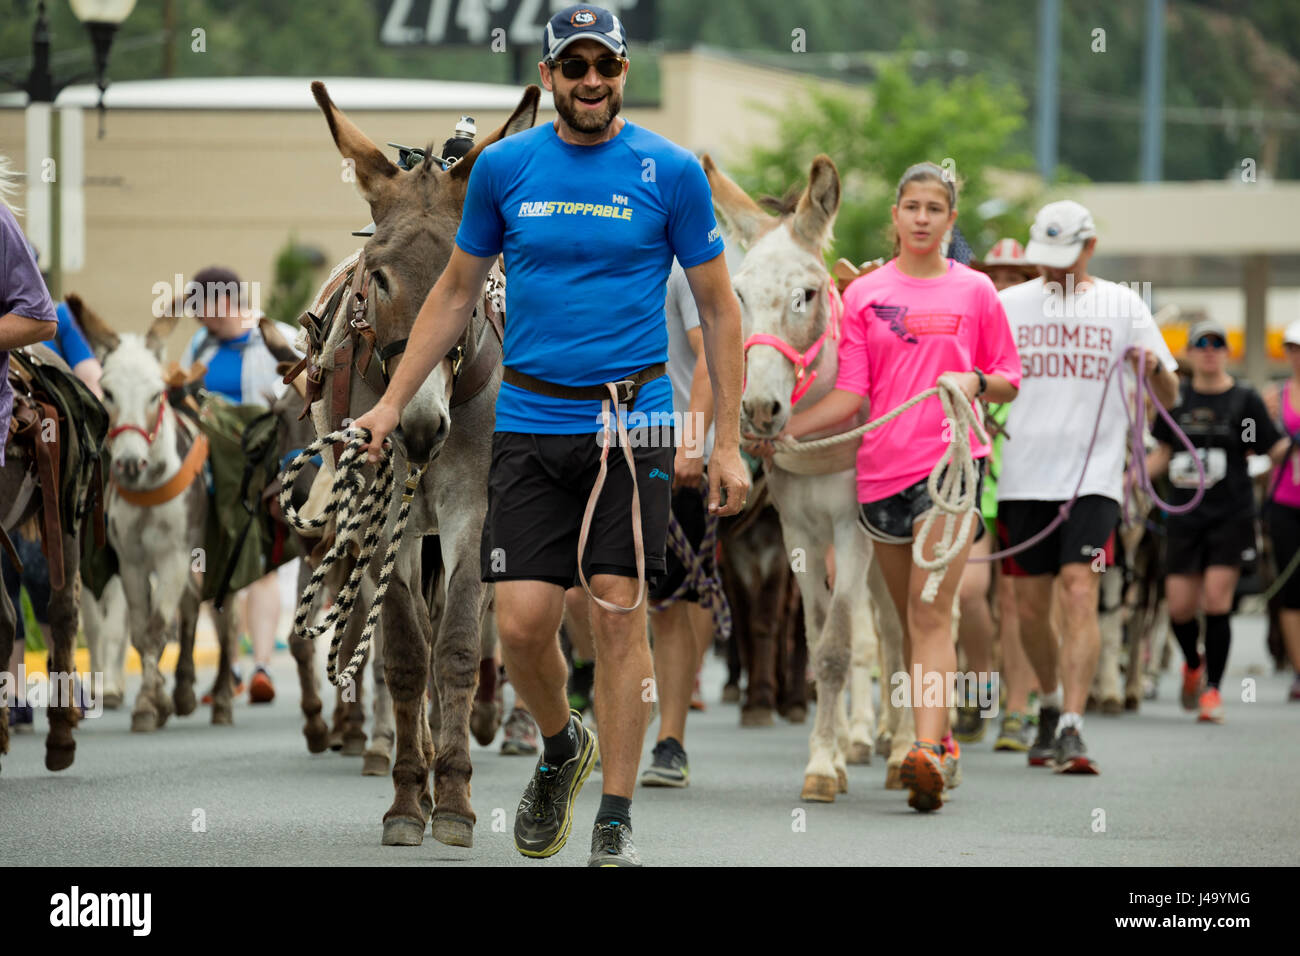 Runners and pack burros (donkeys) on parade, Idaho Springs Tommyknockers Mining Days Festival and Pack Burro Race, - Stock Image